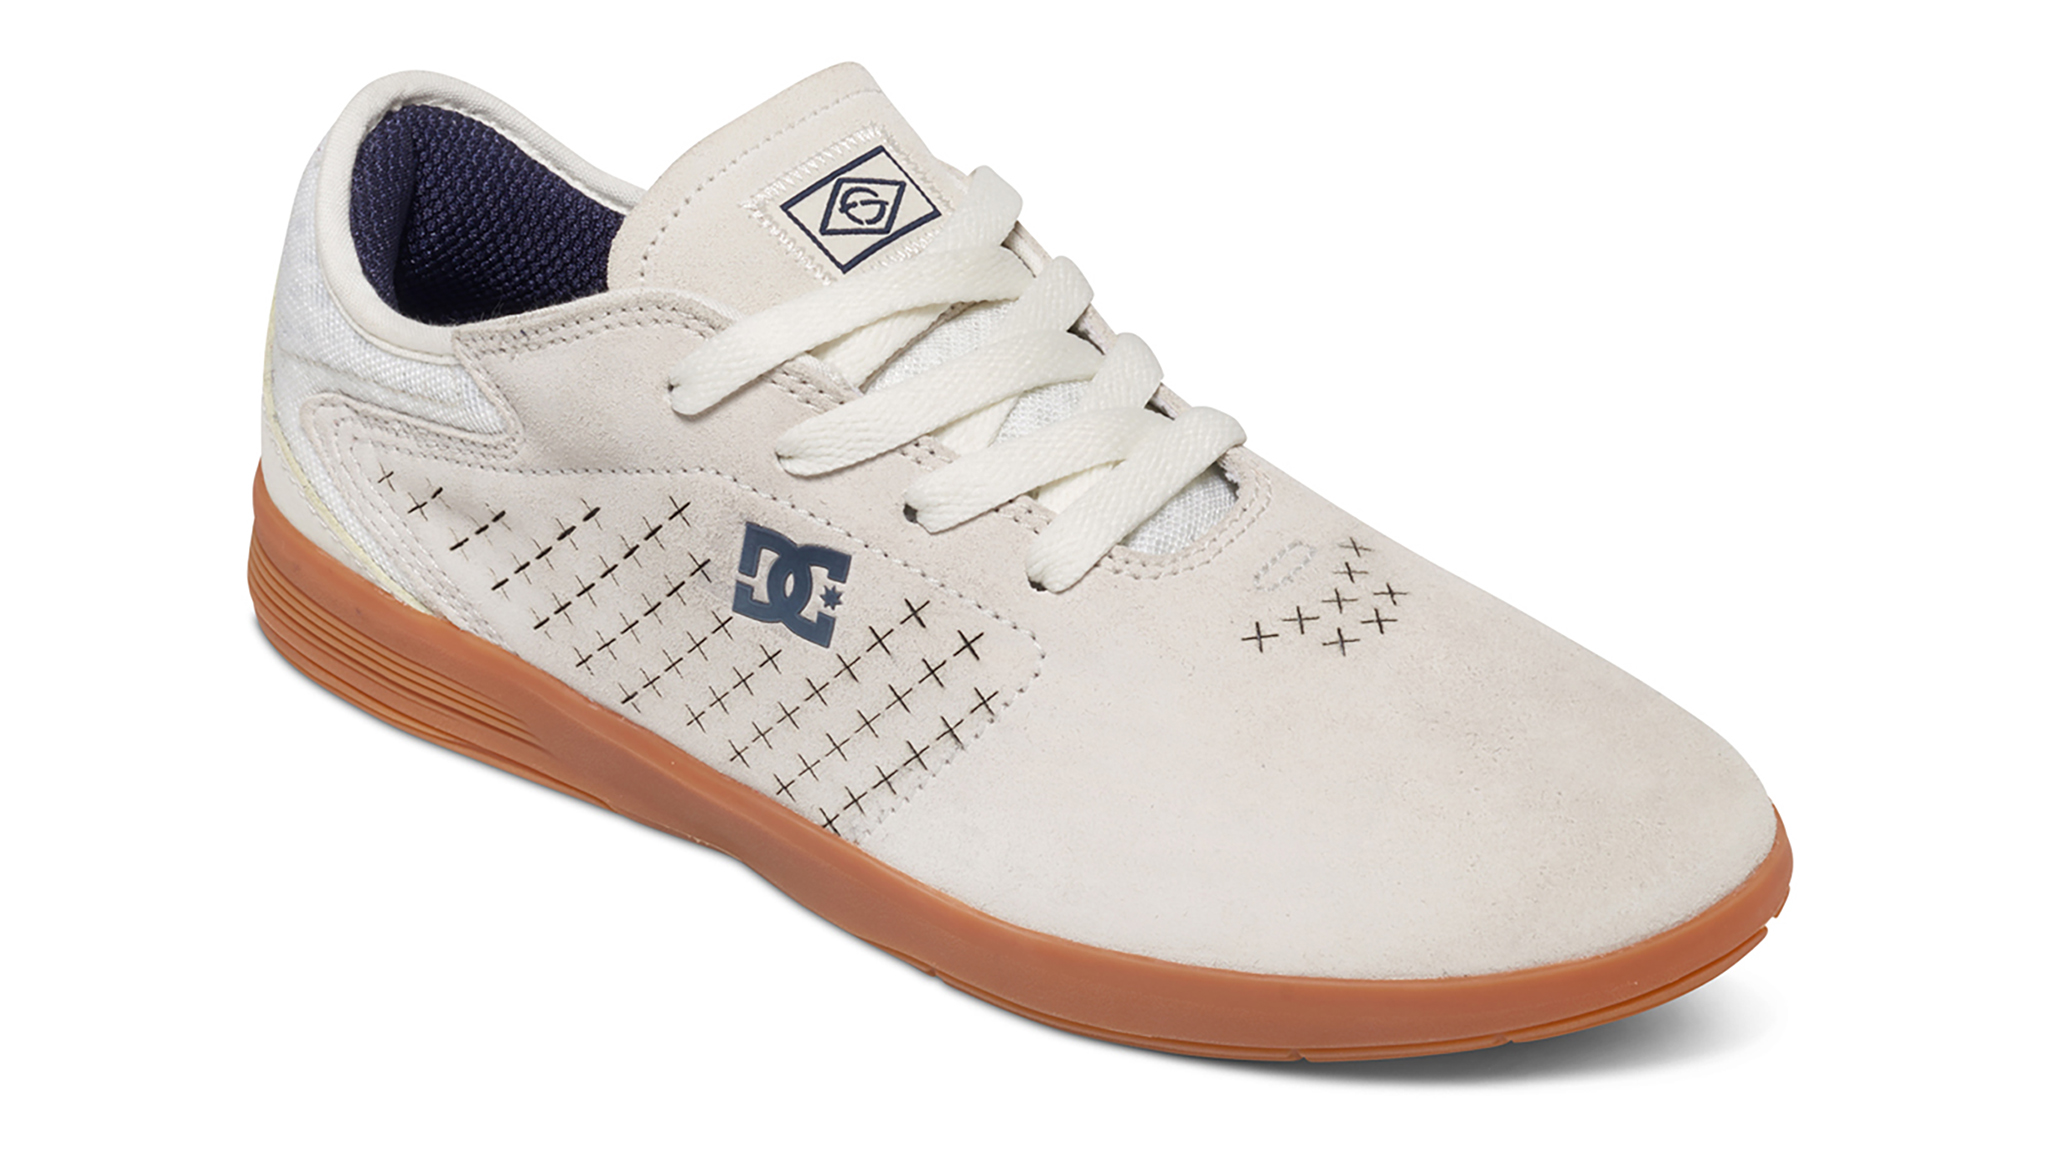 lacoste shoes youtube kelly s father s day gifts